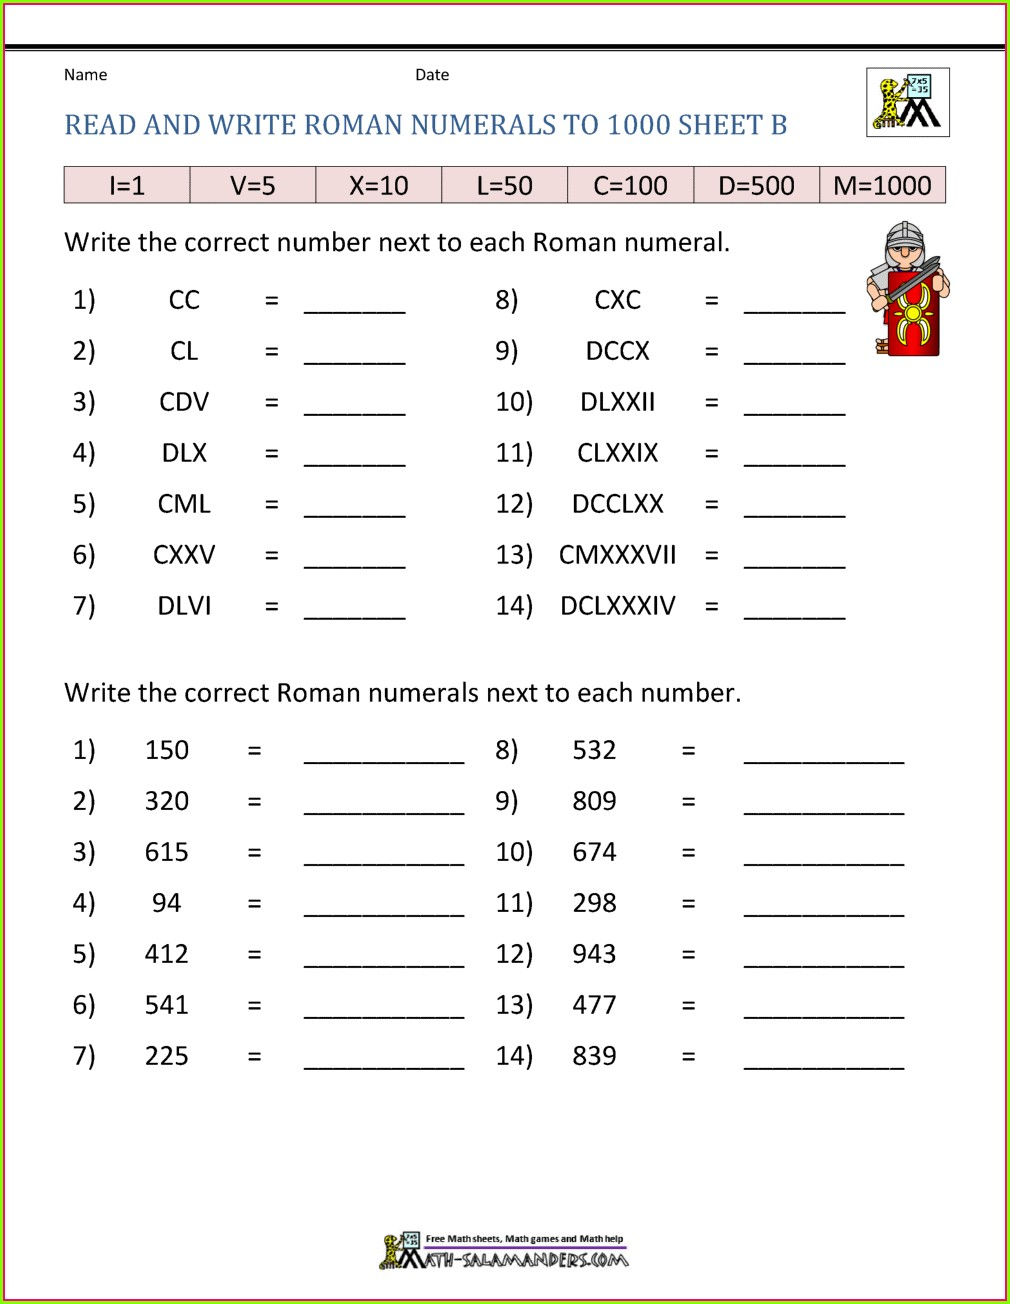 Roman Numeral Multiplication Worksheet